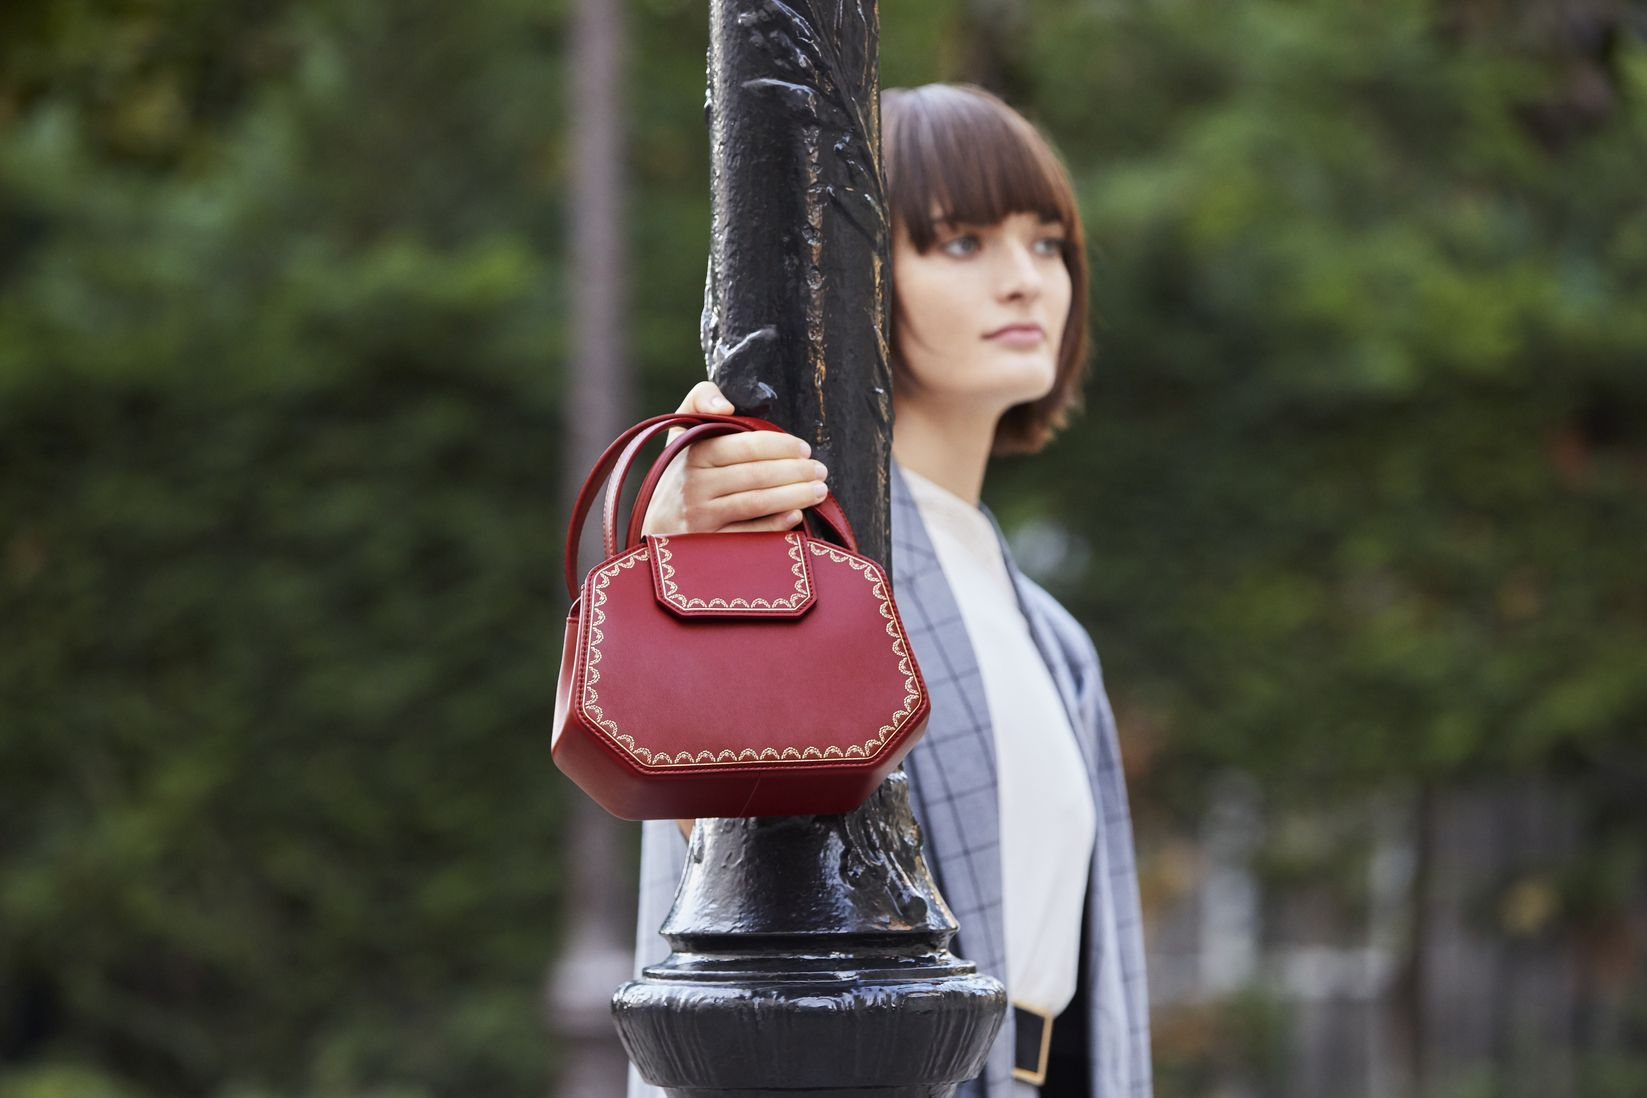 Stand Out From The Crowd With The Guirlande De Cartier Bag